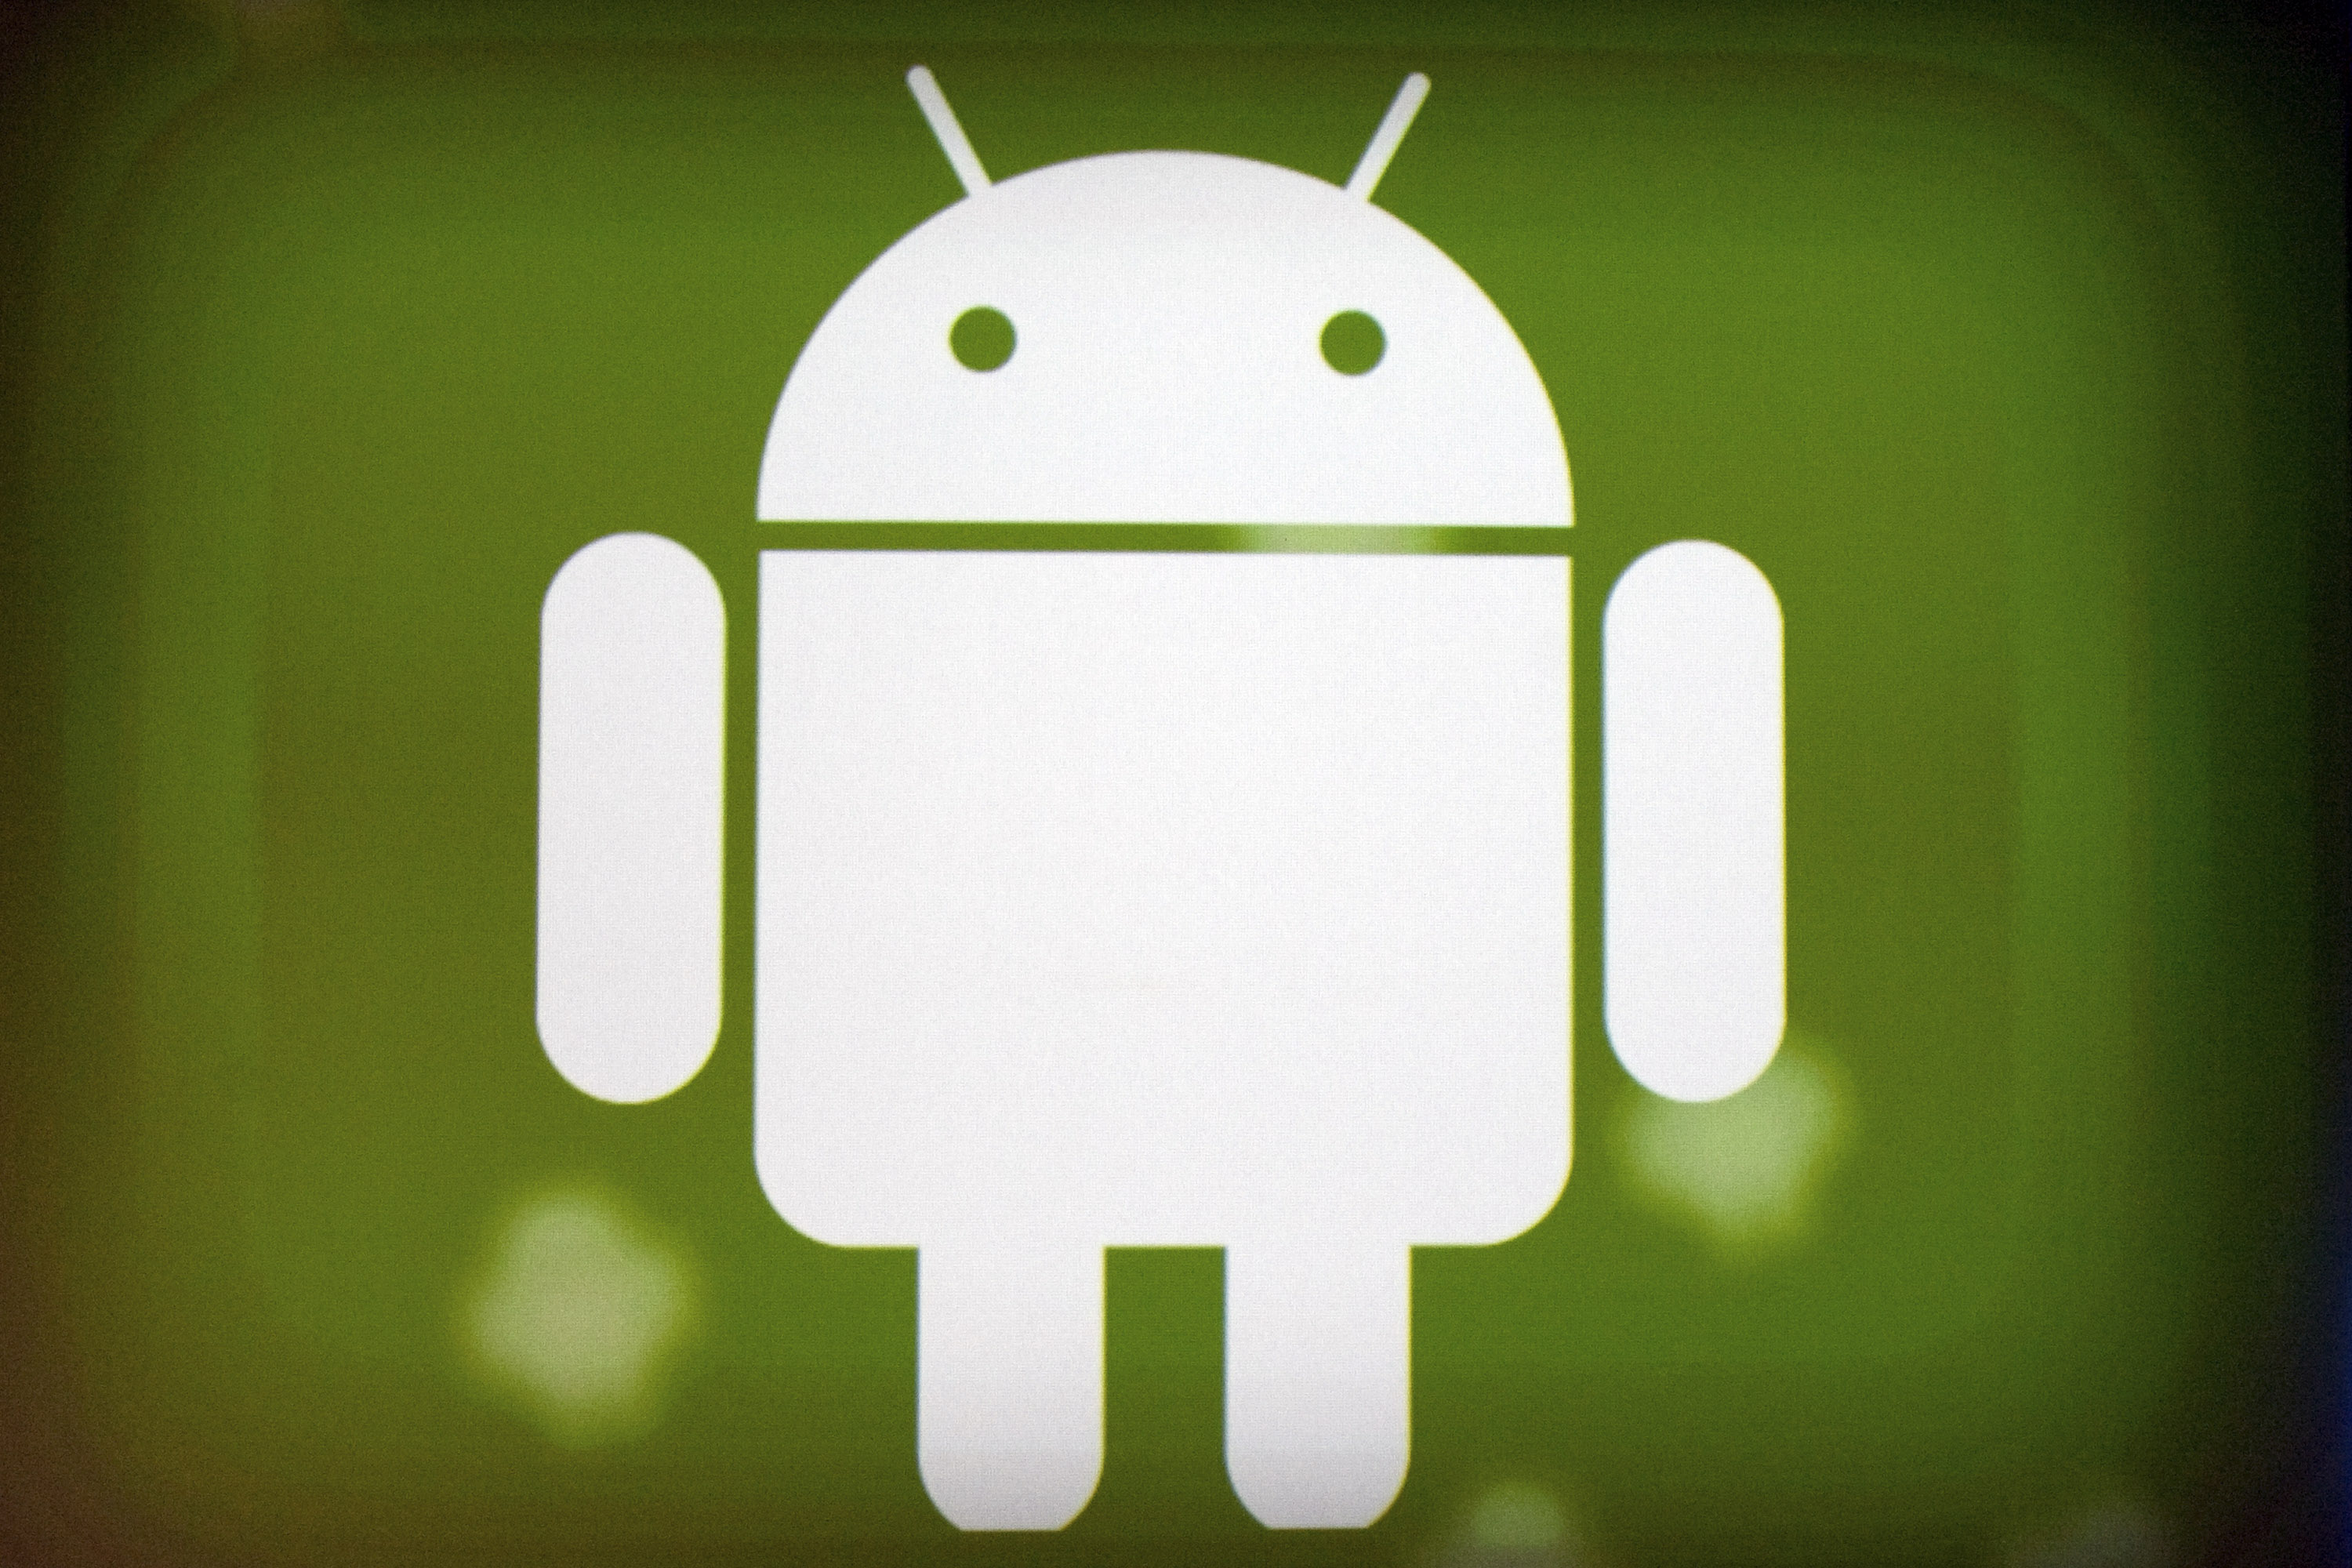 Google Inc.'s Android logo is displayed during a keynote speech at the Google I/O conference in San Francisco, California, U.S., on Tuesday, May 10, 2011.